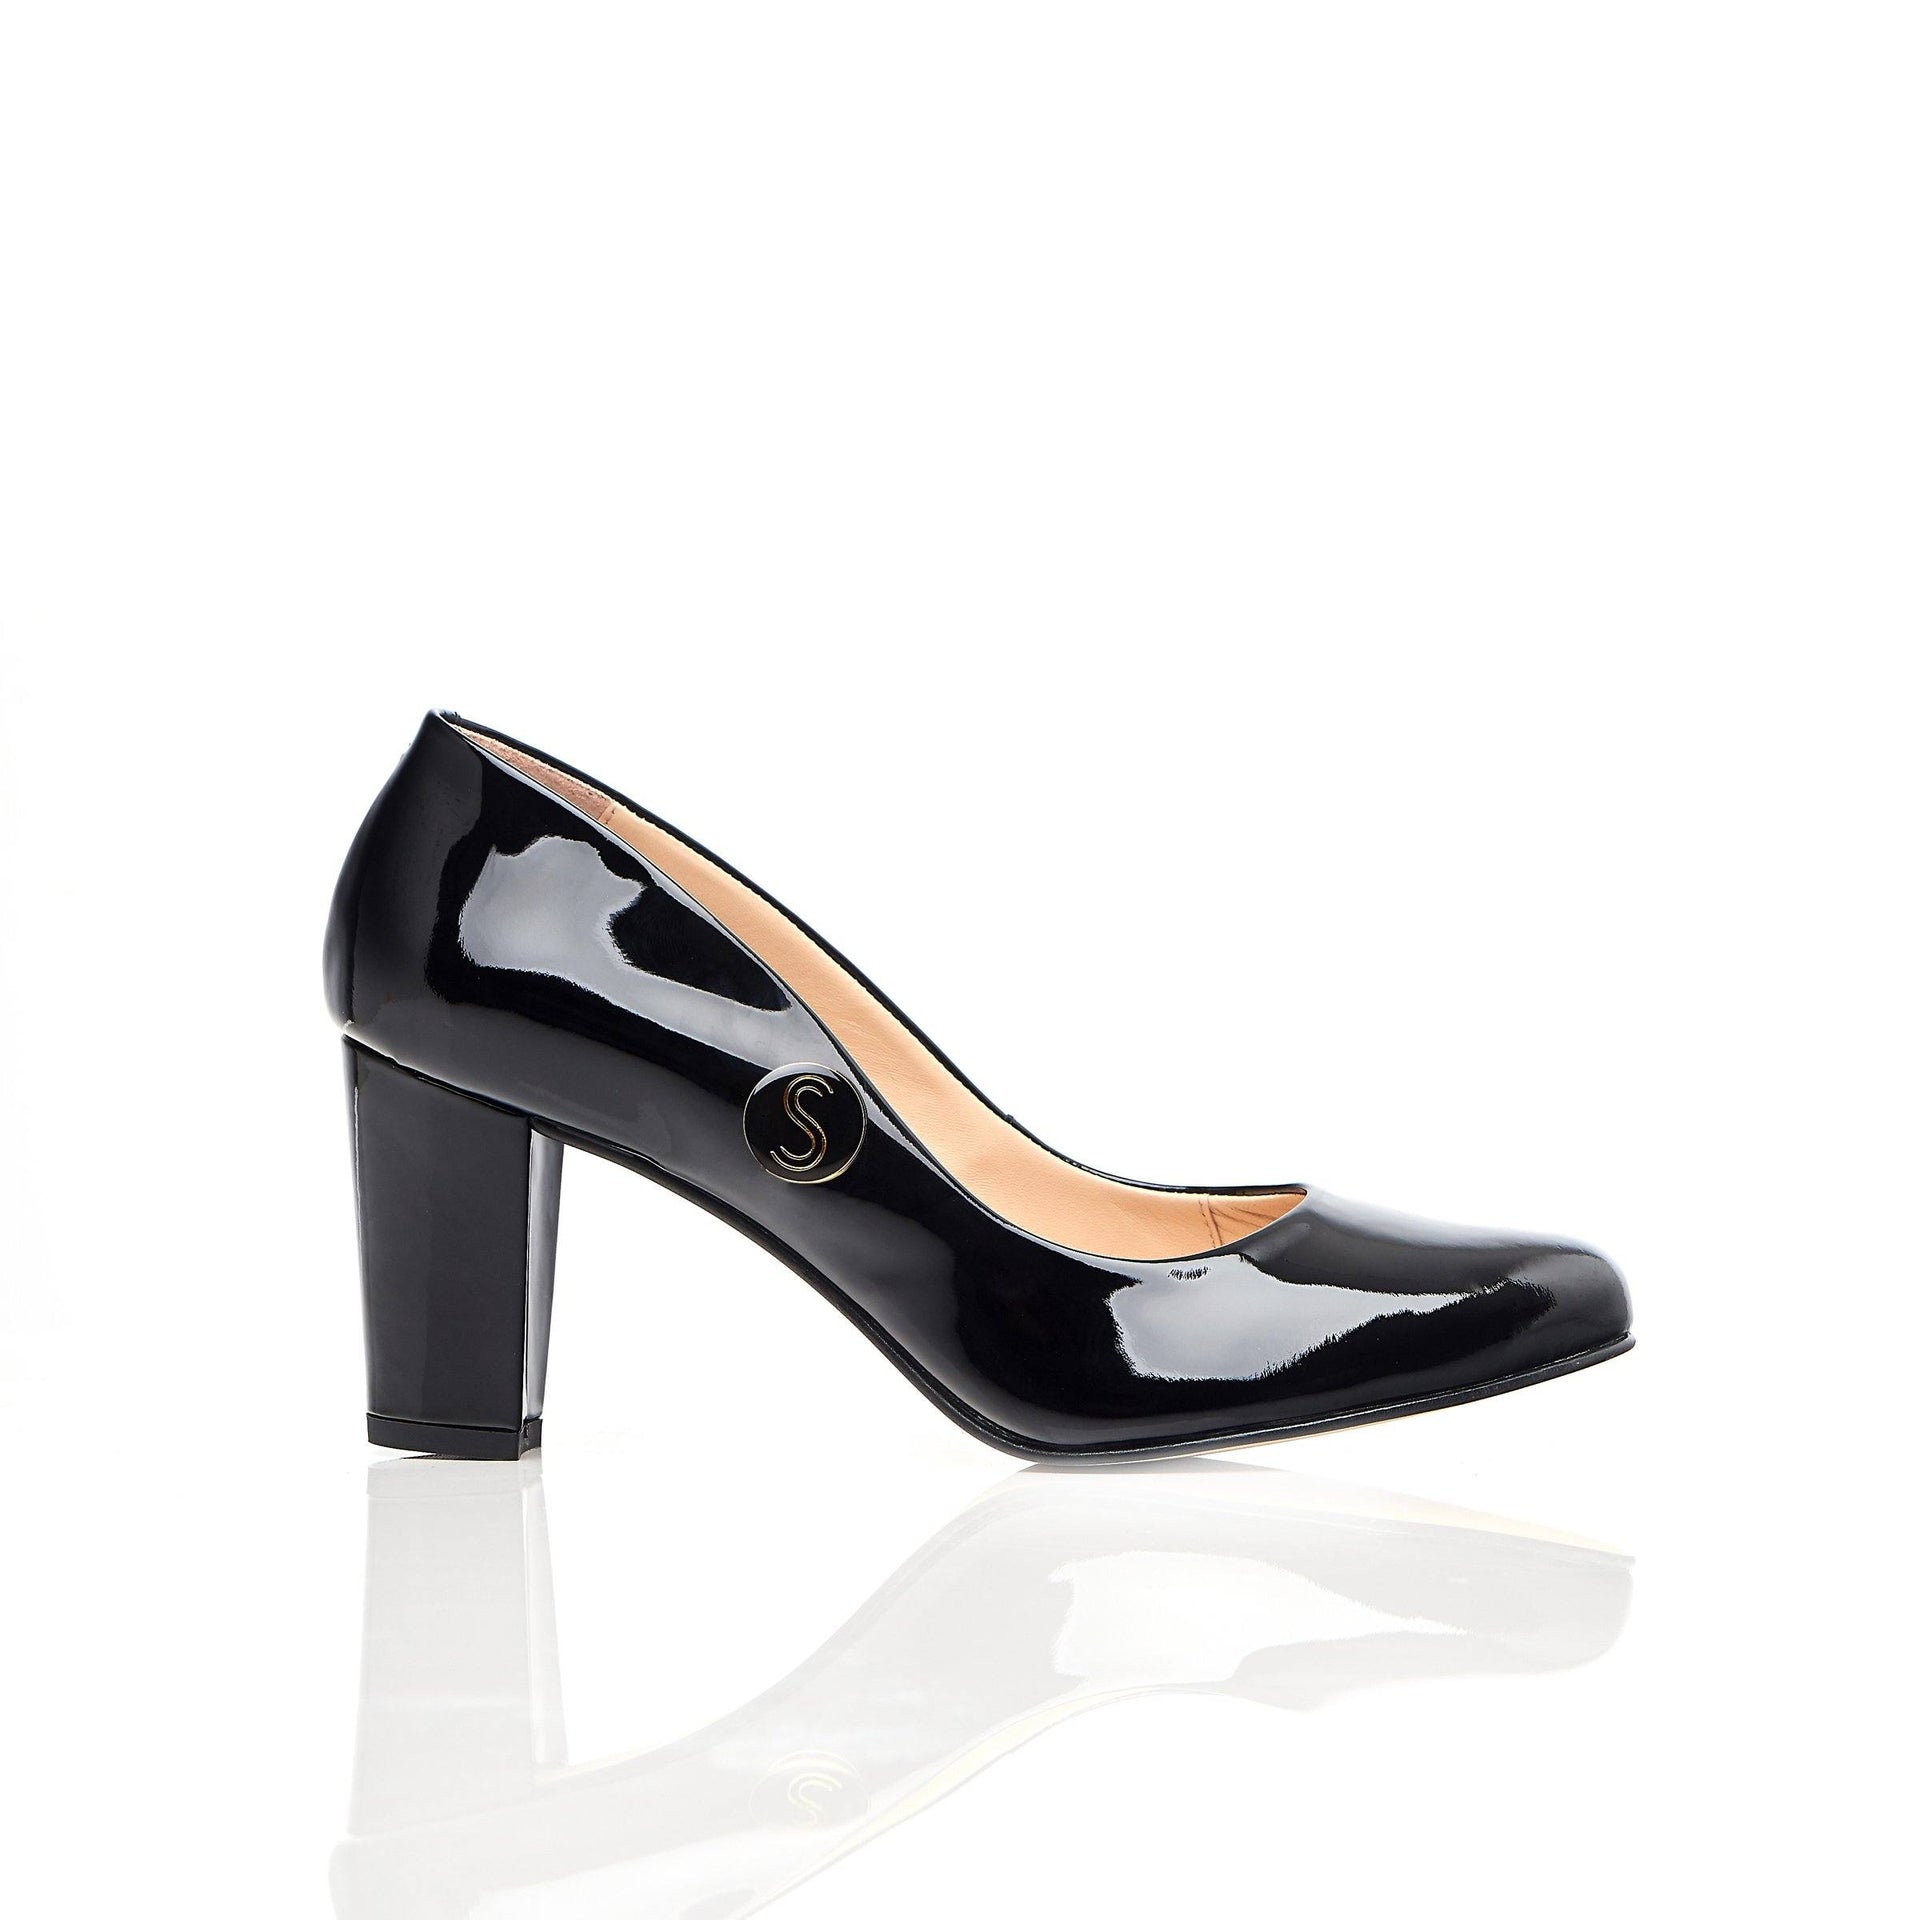 Stand Tall Sister - Block Heels - Black Leather - Shoes by Shaherazad